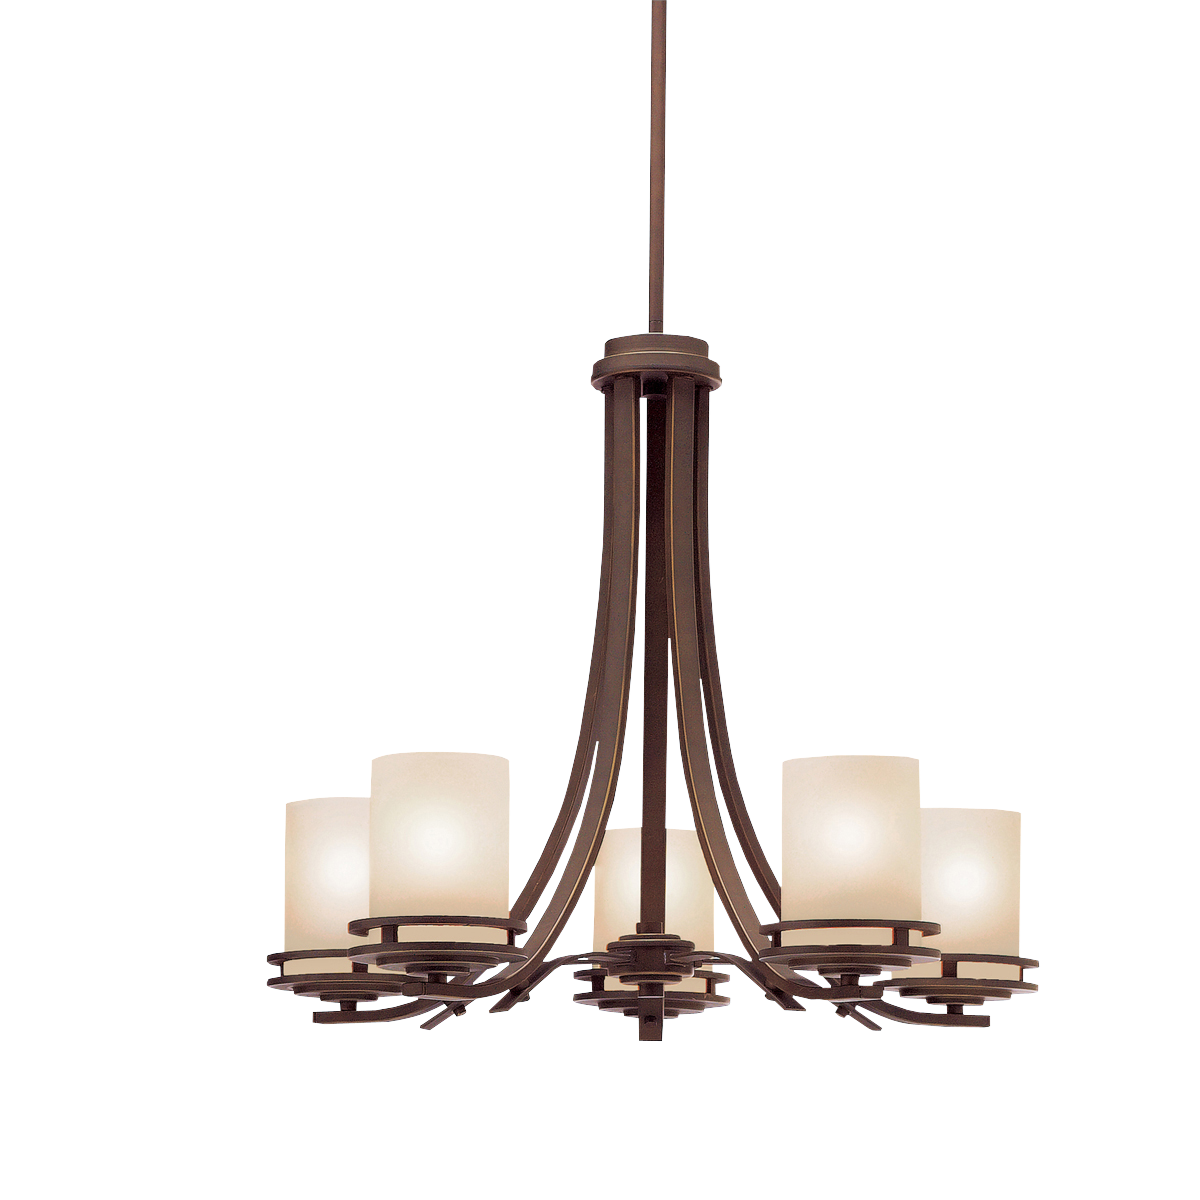 Kichler Dining Room Lighting Stunning Transitional 5 Light Chandelier In Olde Bronze  Hendrik  Kichler Decorating Design